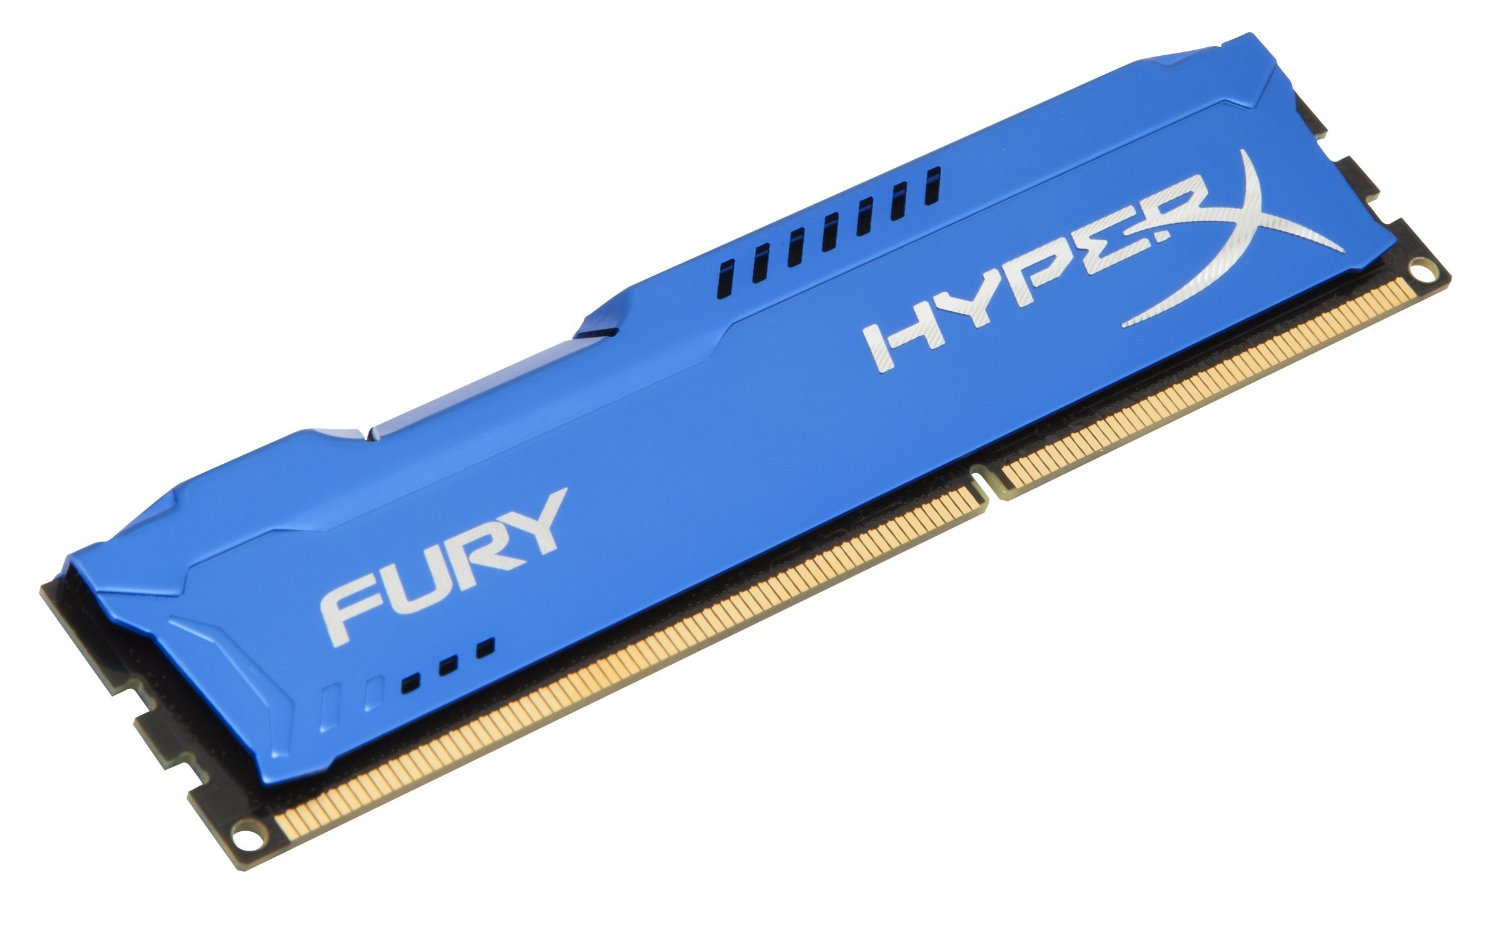 Kingston 4G 1866MHZ DDR3 CL10 Dimm HyperX Fury ( Blue, Red)